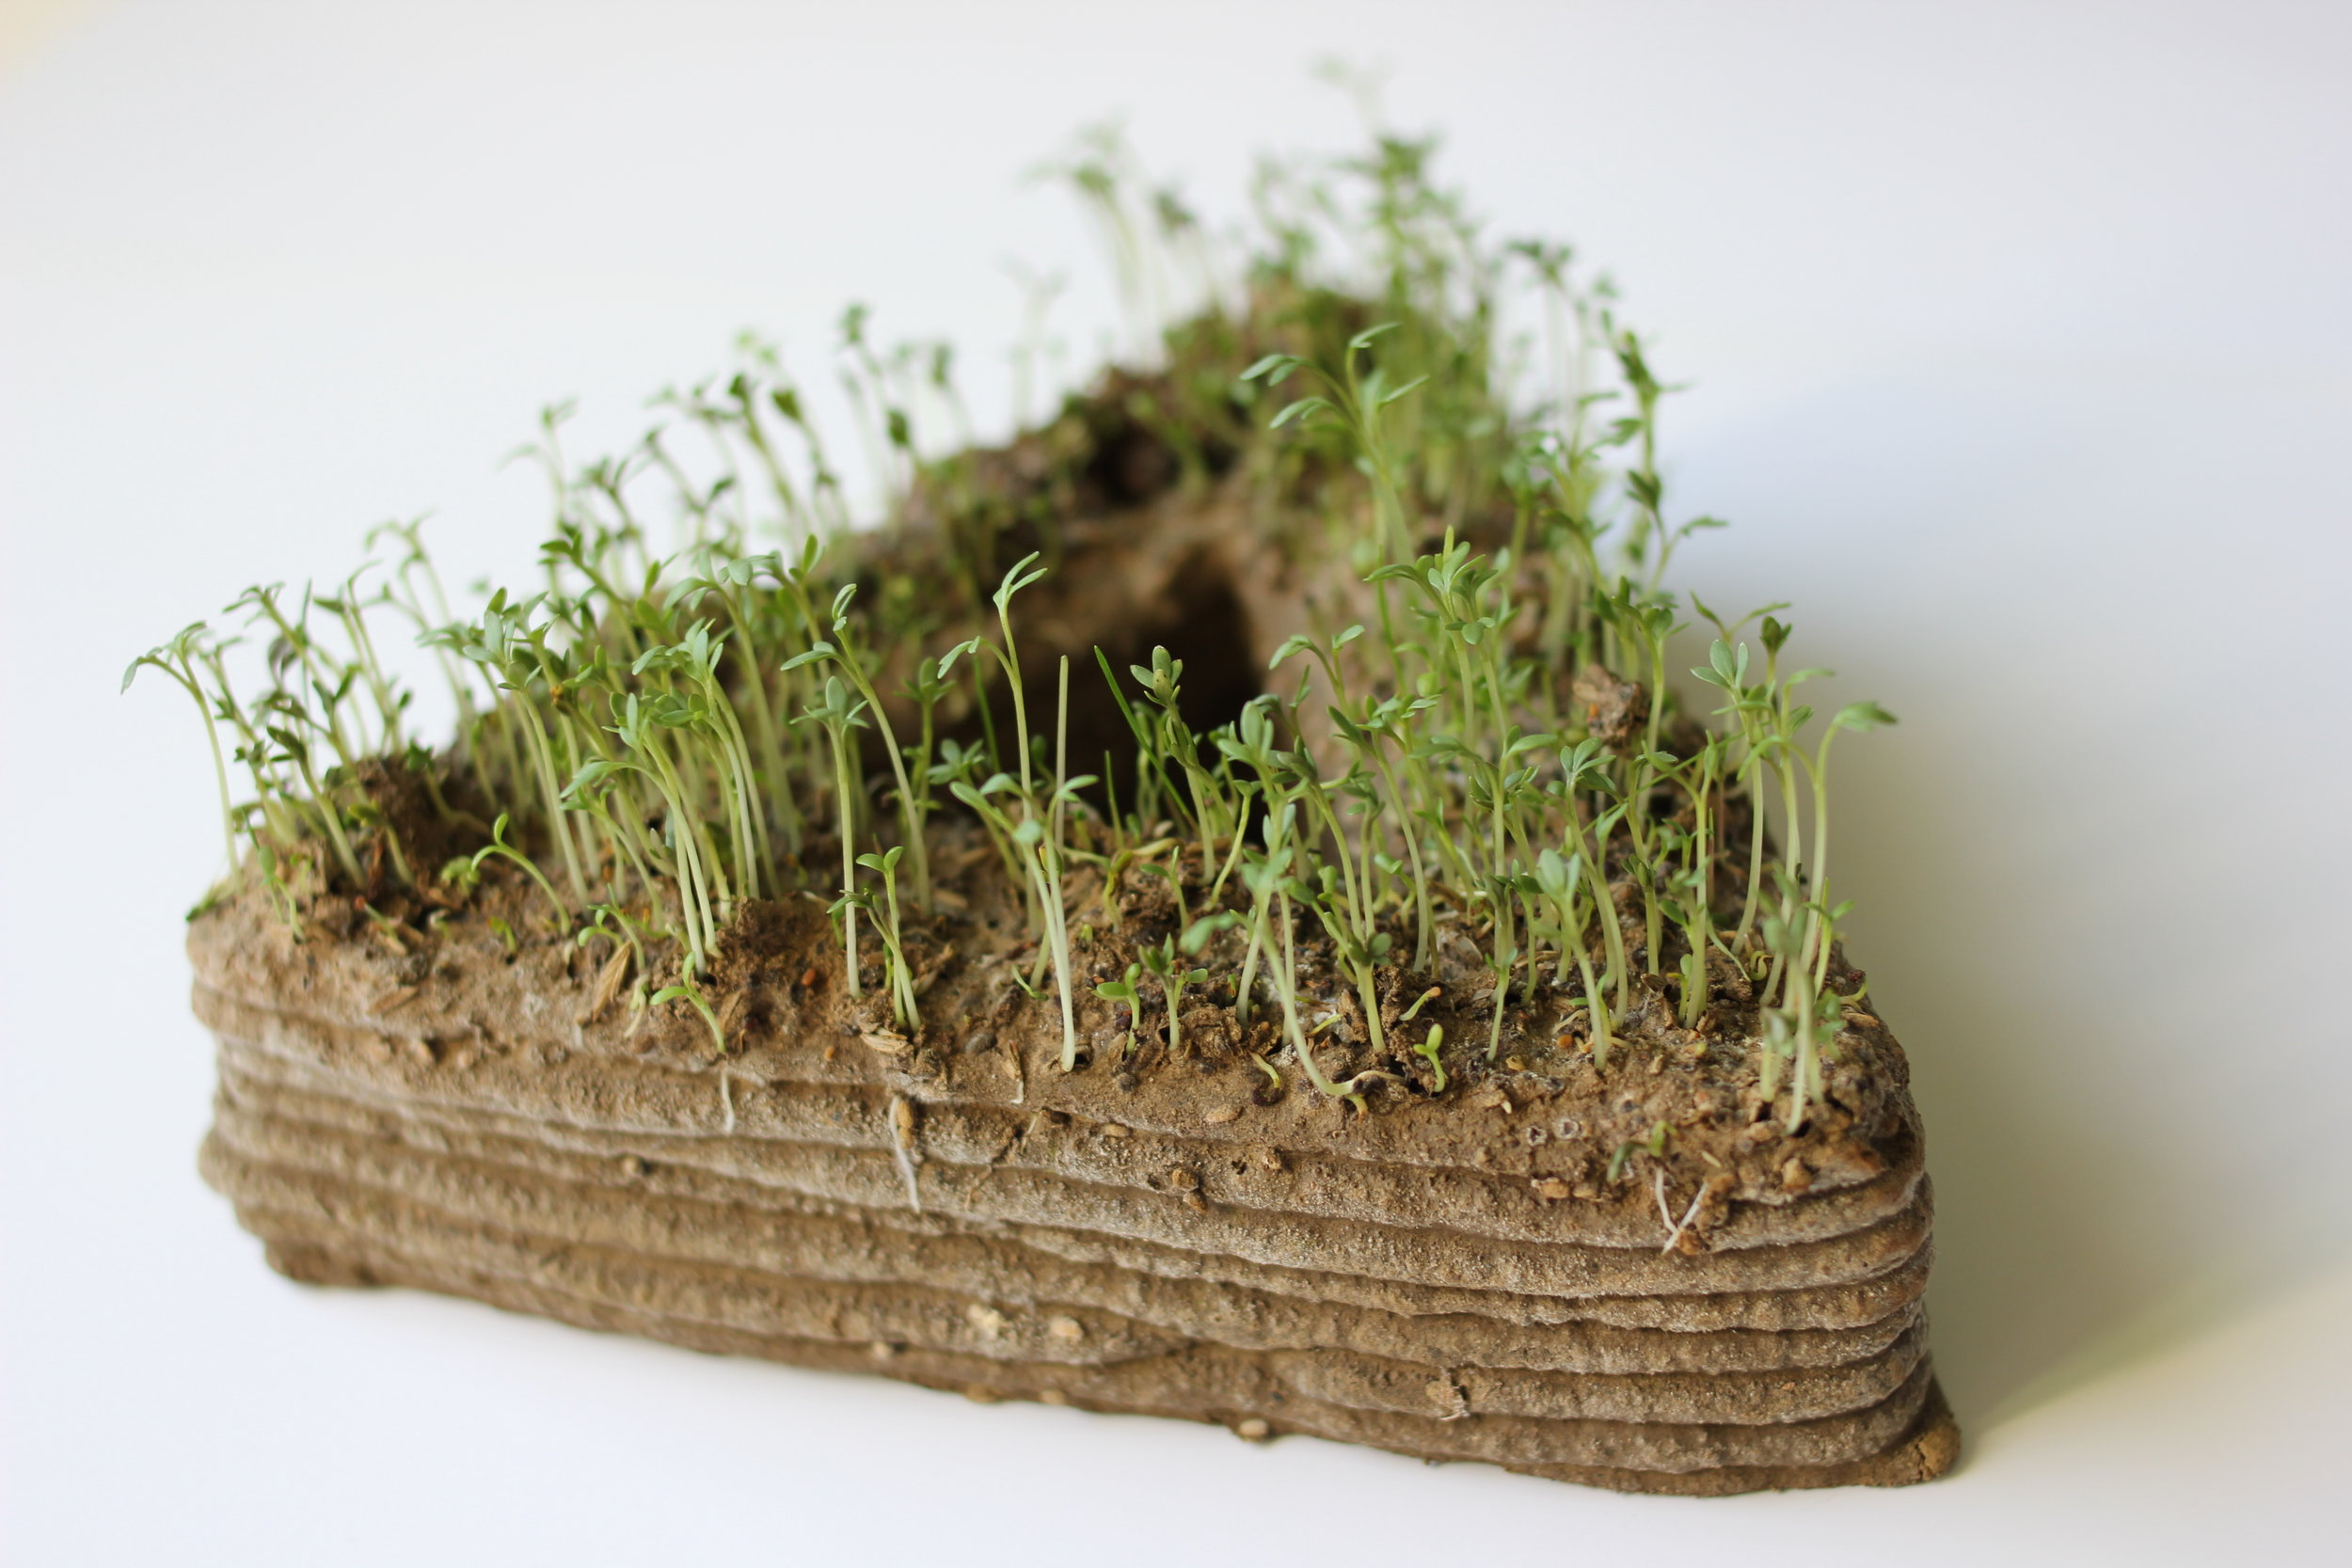 Collaboration with Maja Petek and PrintGreen    https://mapetie.com/   Soil 3D Print, Watercress, Clover  1-3-17